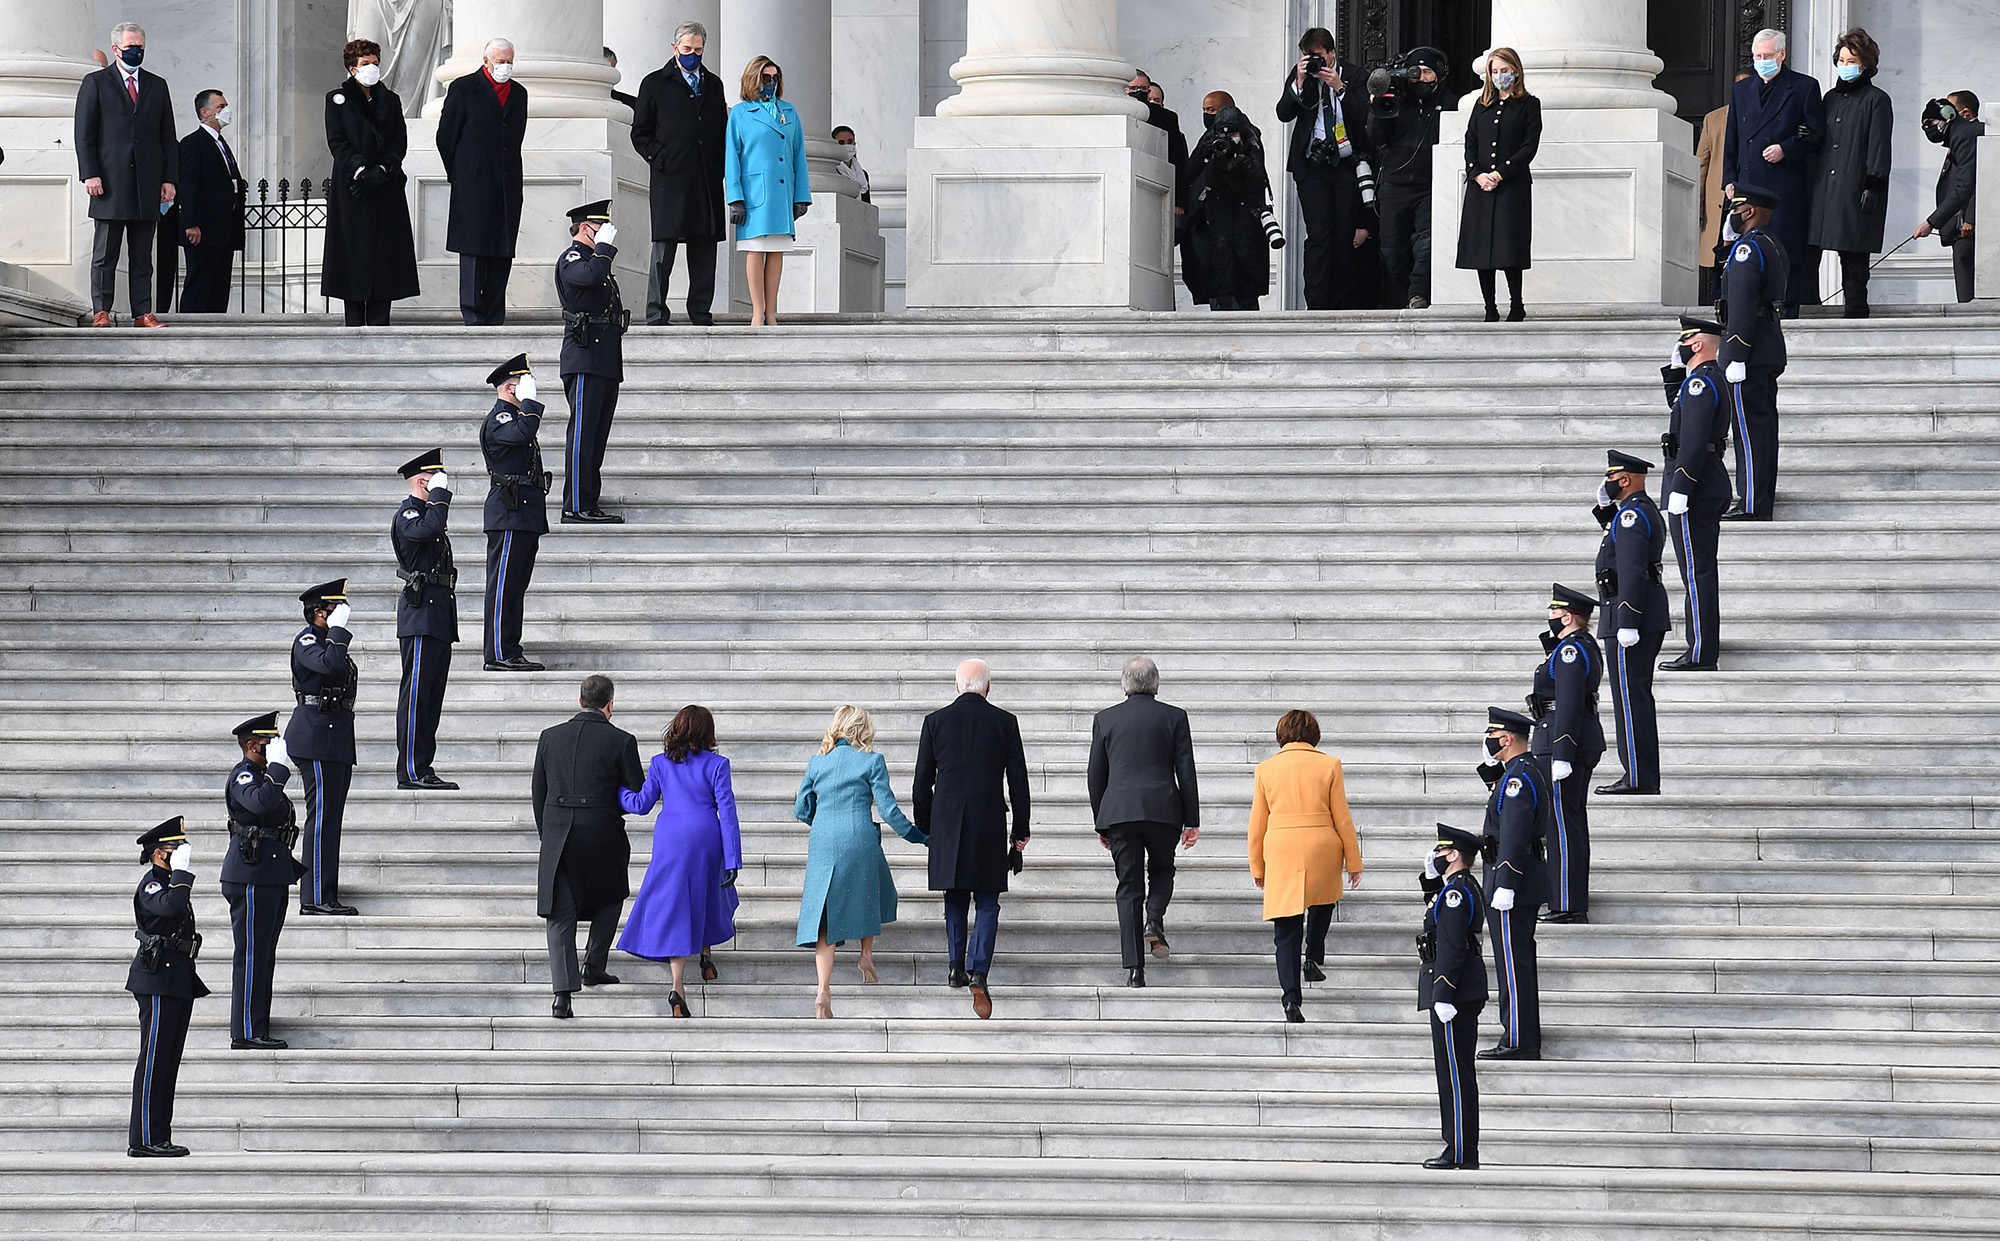 Left to right: Doug Emhoff, Vice President-elect Kamala Harris, incoming first lady Jill Biden, President-elect Joe Biden, Missouri Sen. Roy Blunt and Minnesota Sen. Amy Klobuchar arrive for the inauguration of Joe Biden as the 46th president on Jan. 20, 2021, at the Capitol in Washington. (Angela Weiss/AFP via Getty Images)